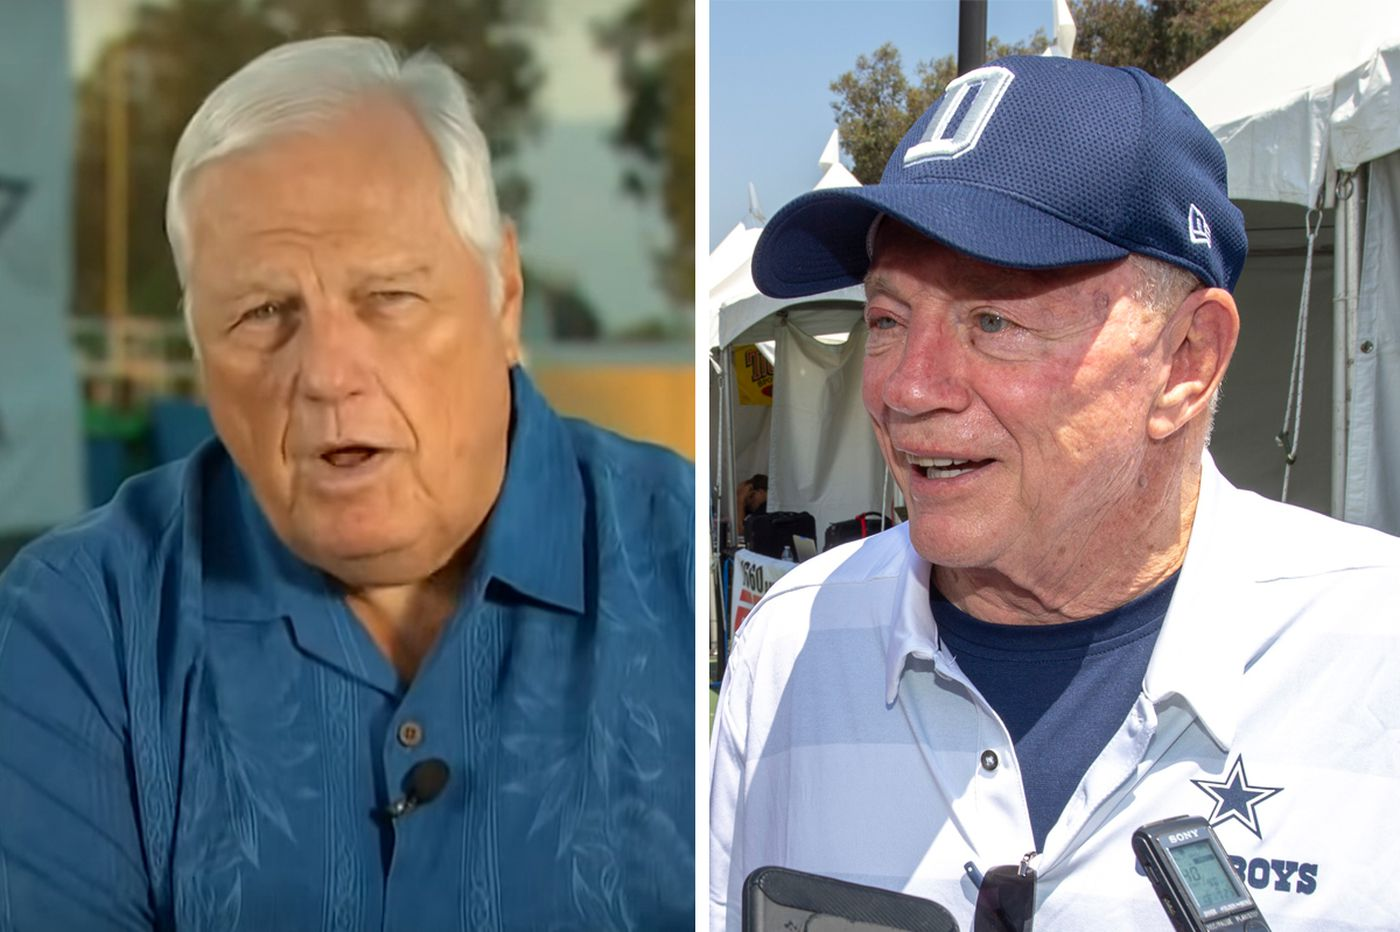 Dallas anchor Dale Hansen calls out Jerry Jones: You can beat a woman and play for the Cowboys